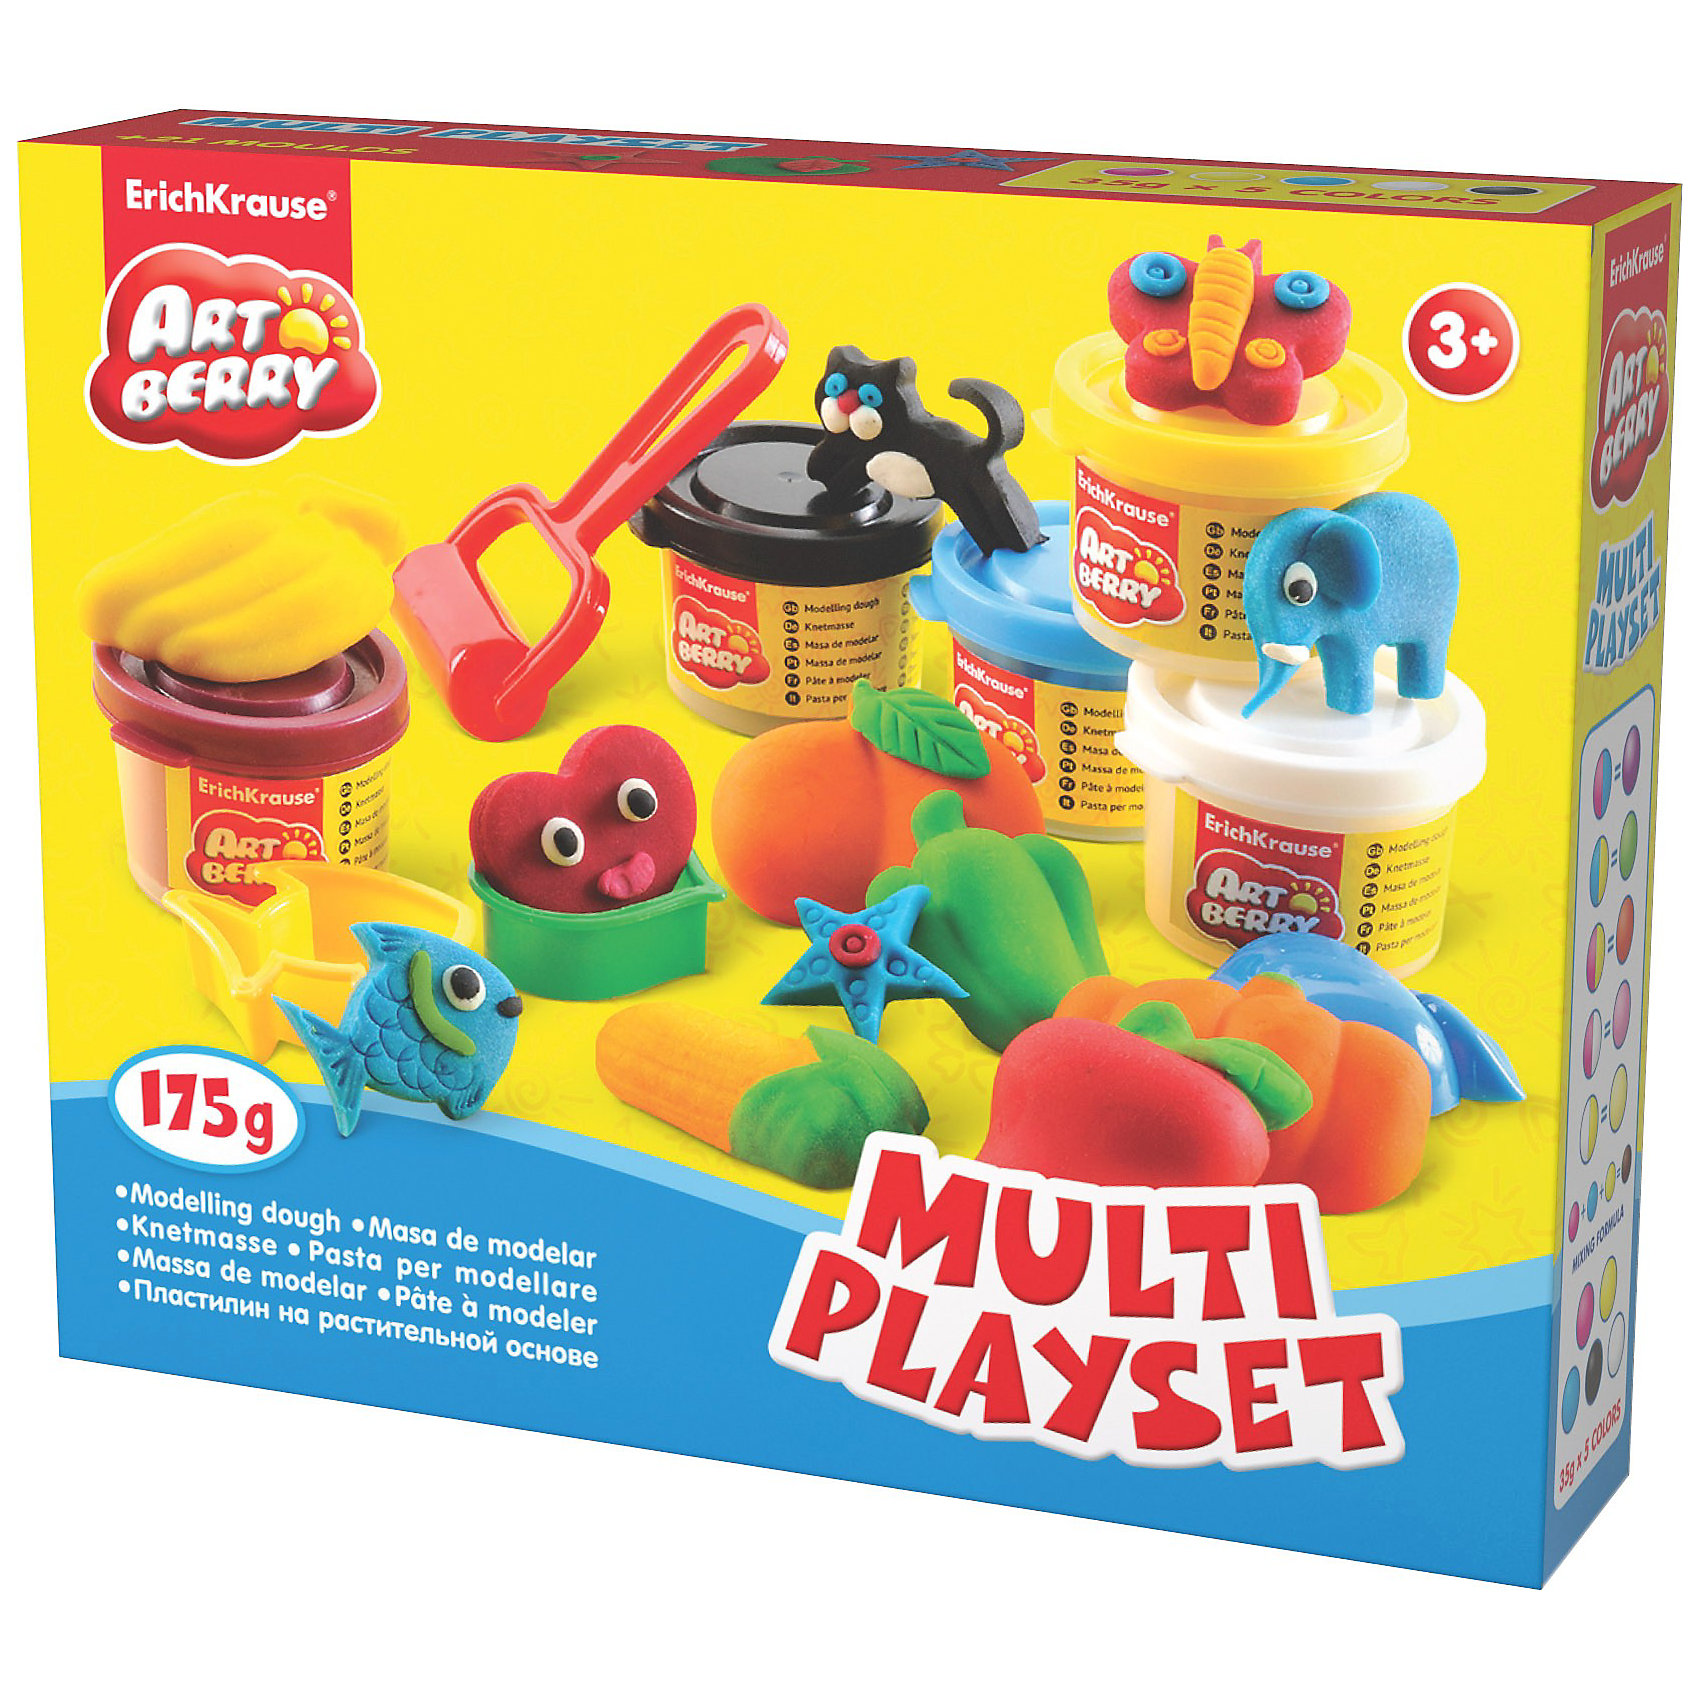 ������� ����� Multi Playset, Artberry, 5 �� (ErichKrause)